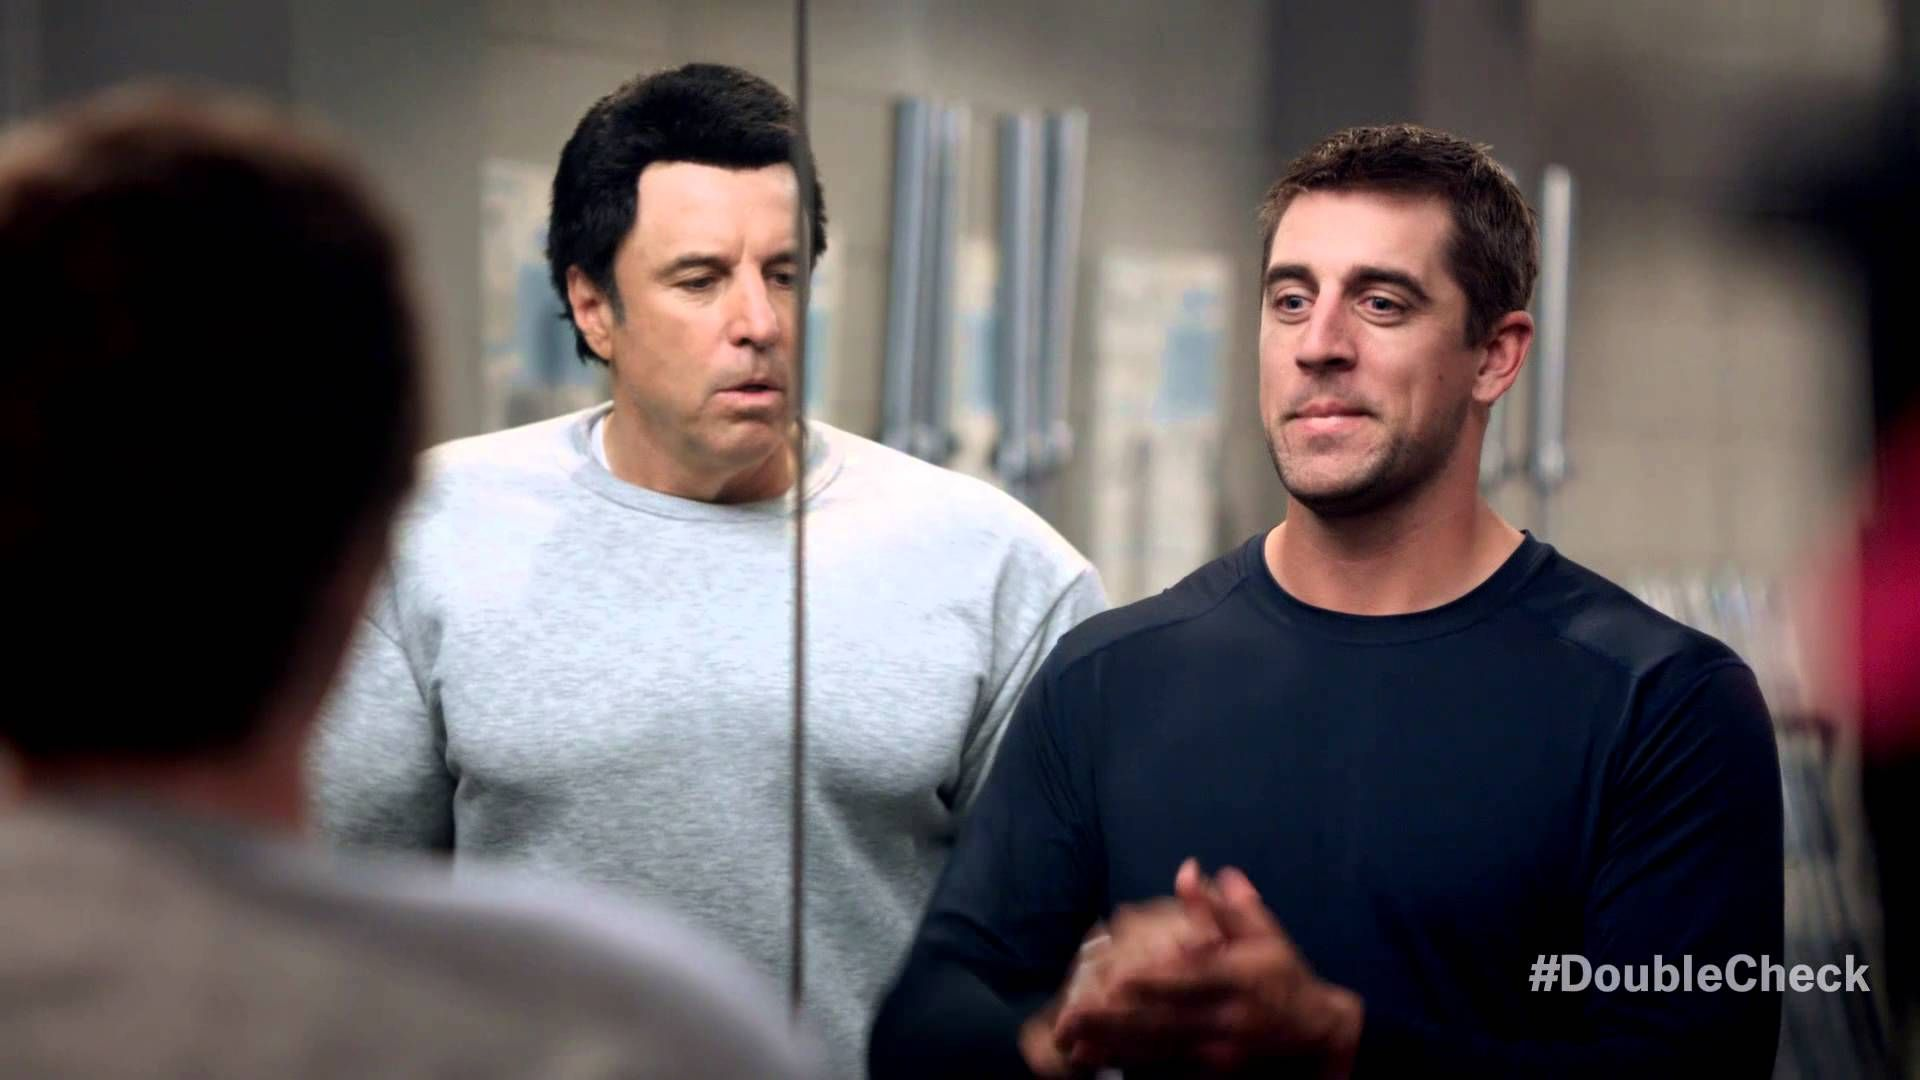 State Farm 30 Ad Mirrors W Aaron Rodgers And Hans Franz Dana Car Green Bay Packers Dana Carvey Aaron Rodgers Kevin Nealon